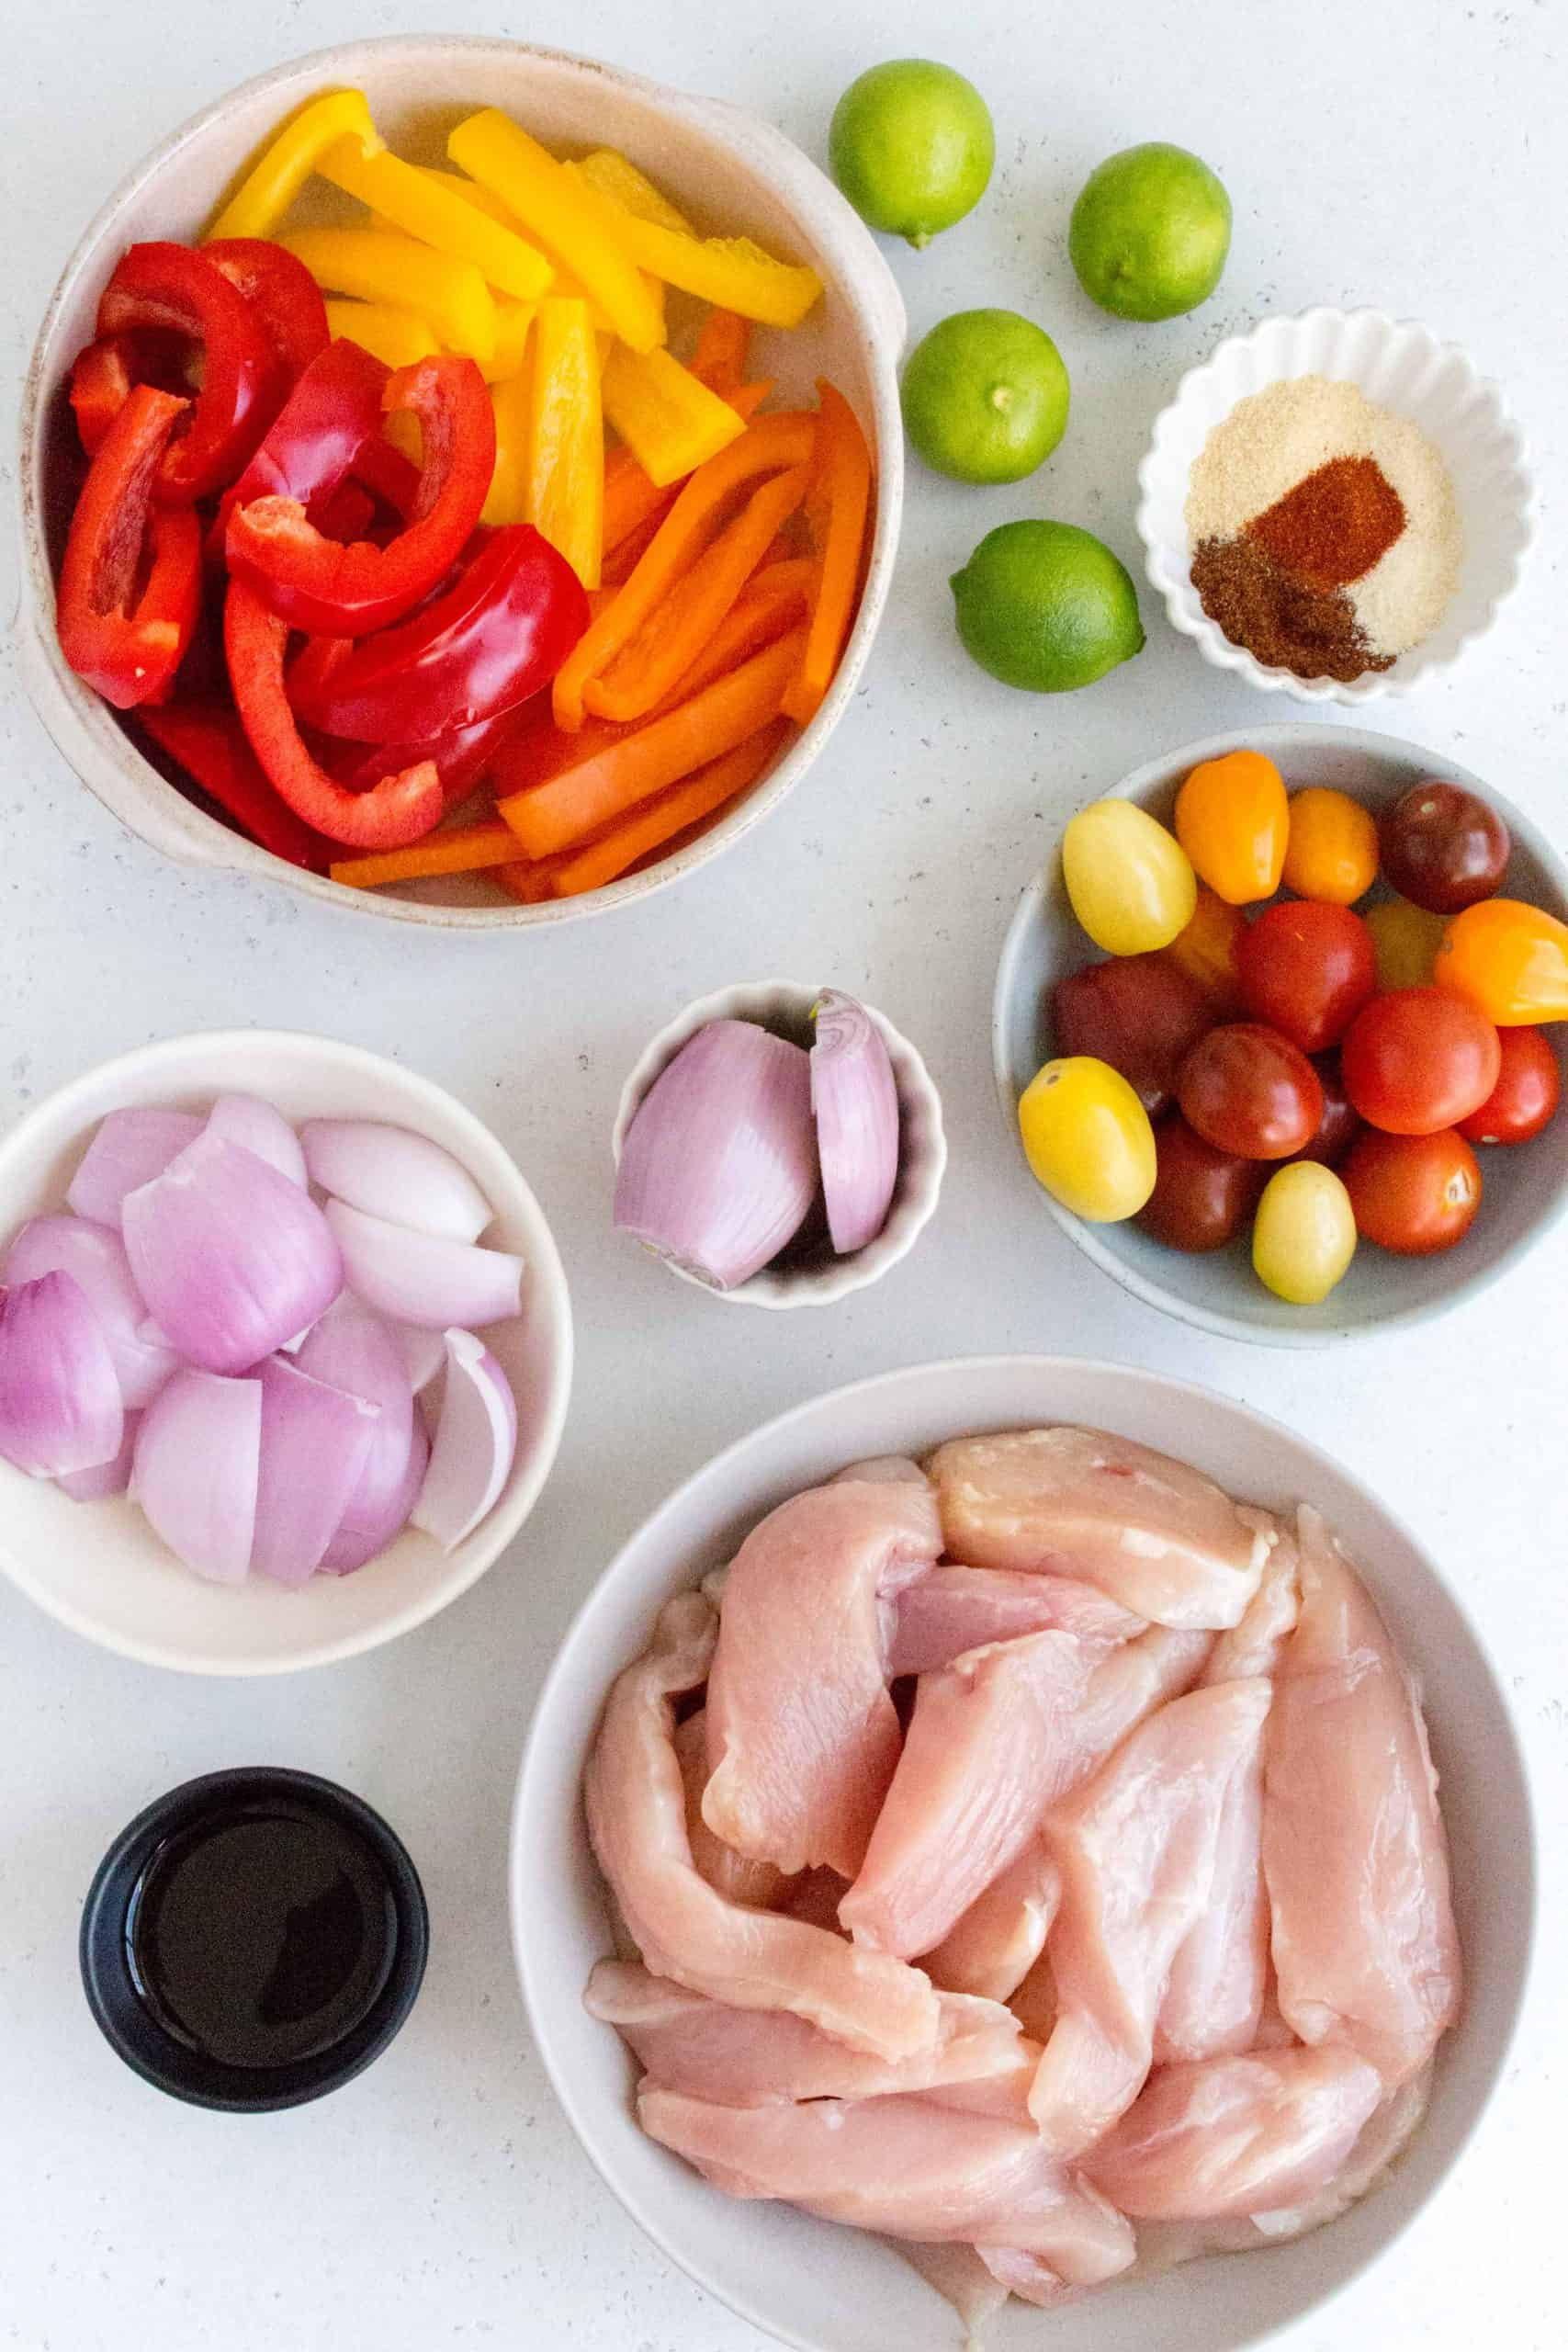 ingredients for chili lime chicken fajitas